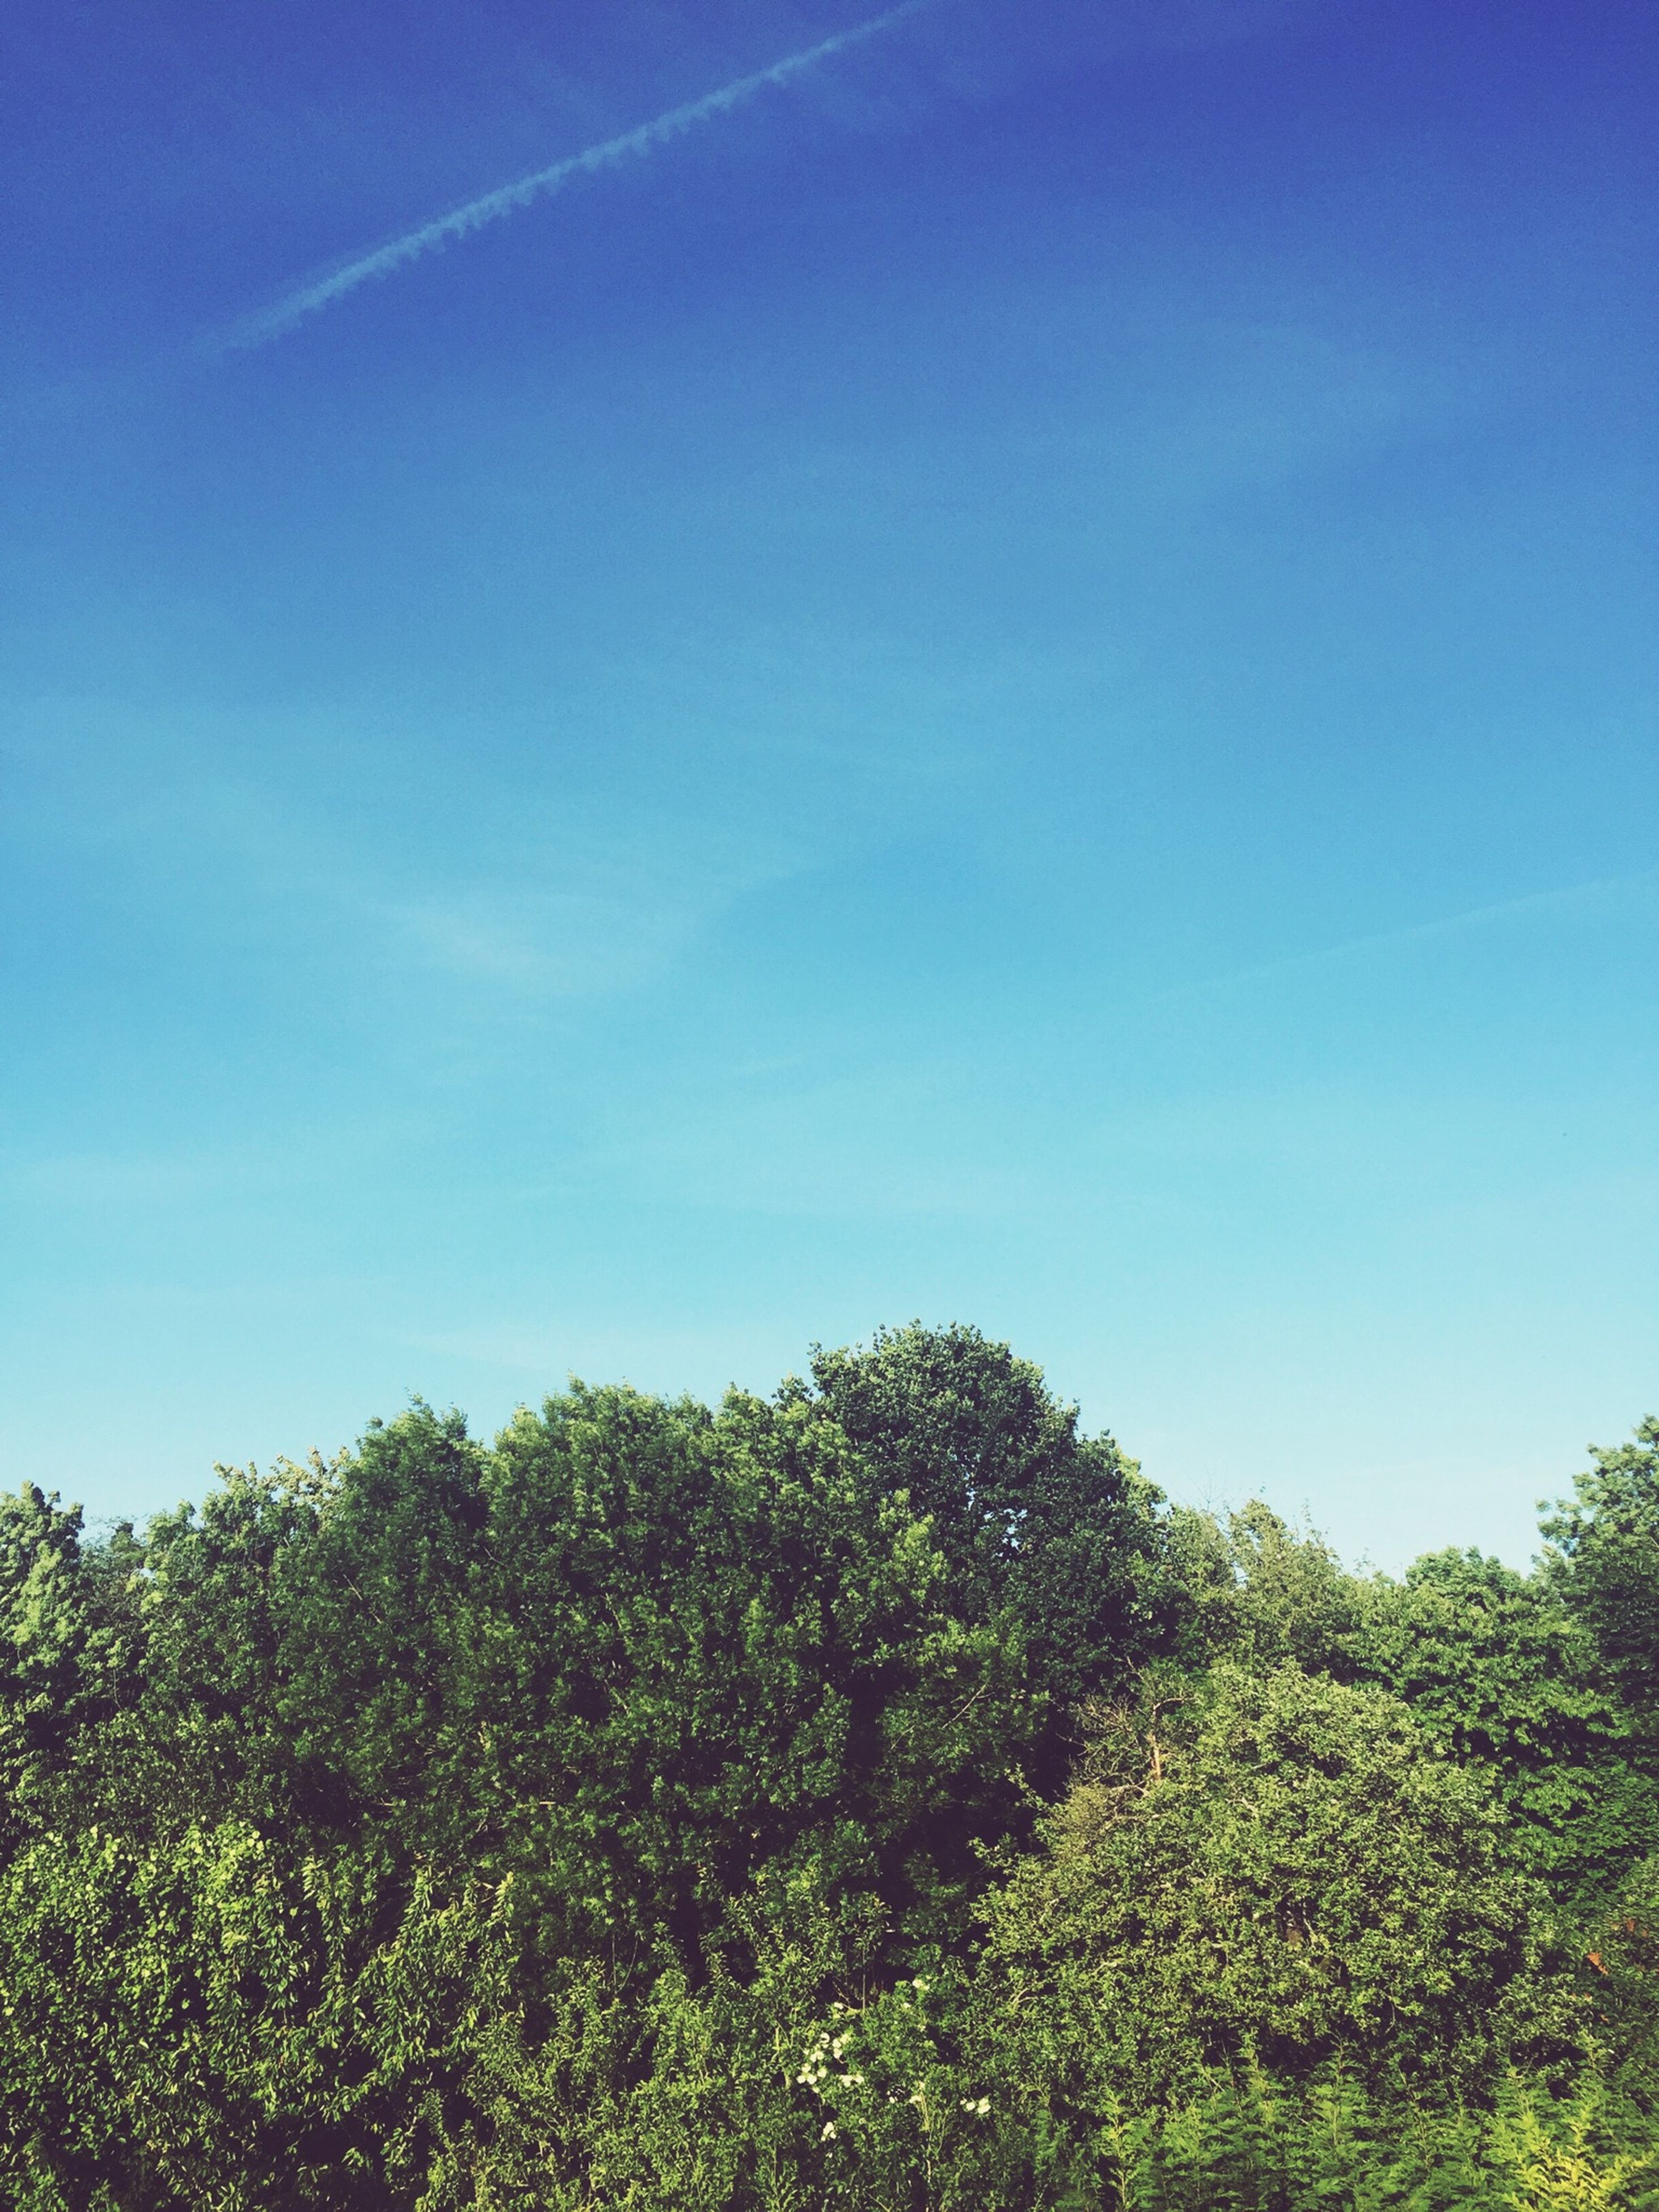 blue, tree, tranquility, growth, clear sky, tranquil scene, beauty in nature, green color, nature, copy space, scenics, landscape, sky, field, low angle view, plant, grass, green, non-urban scene, day